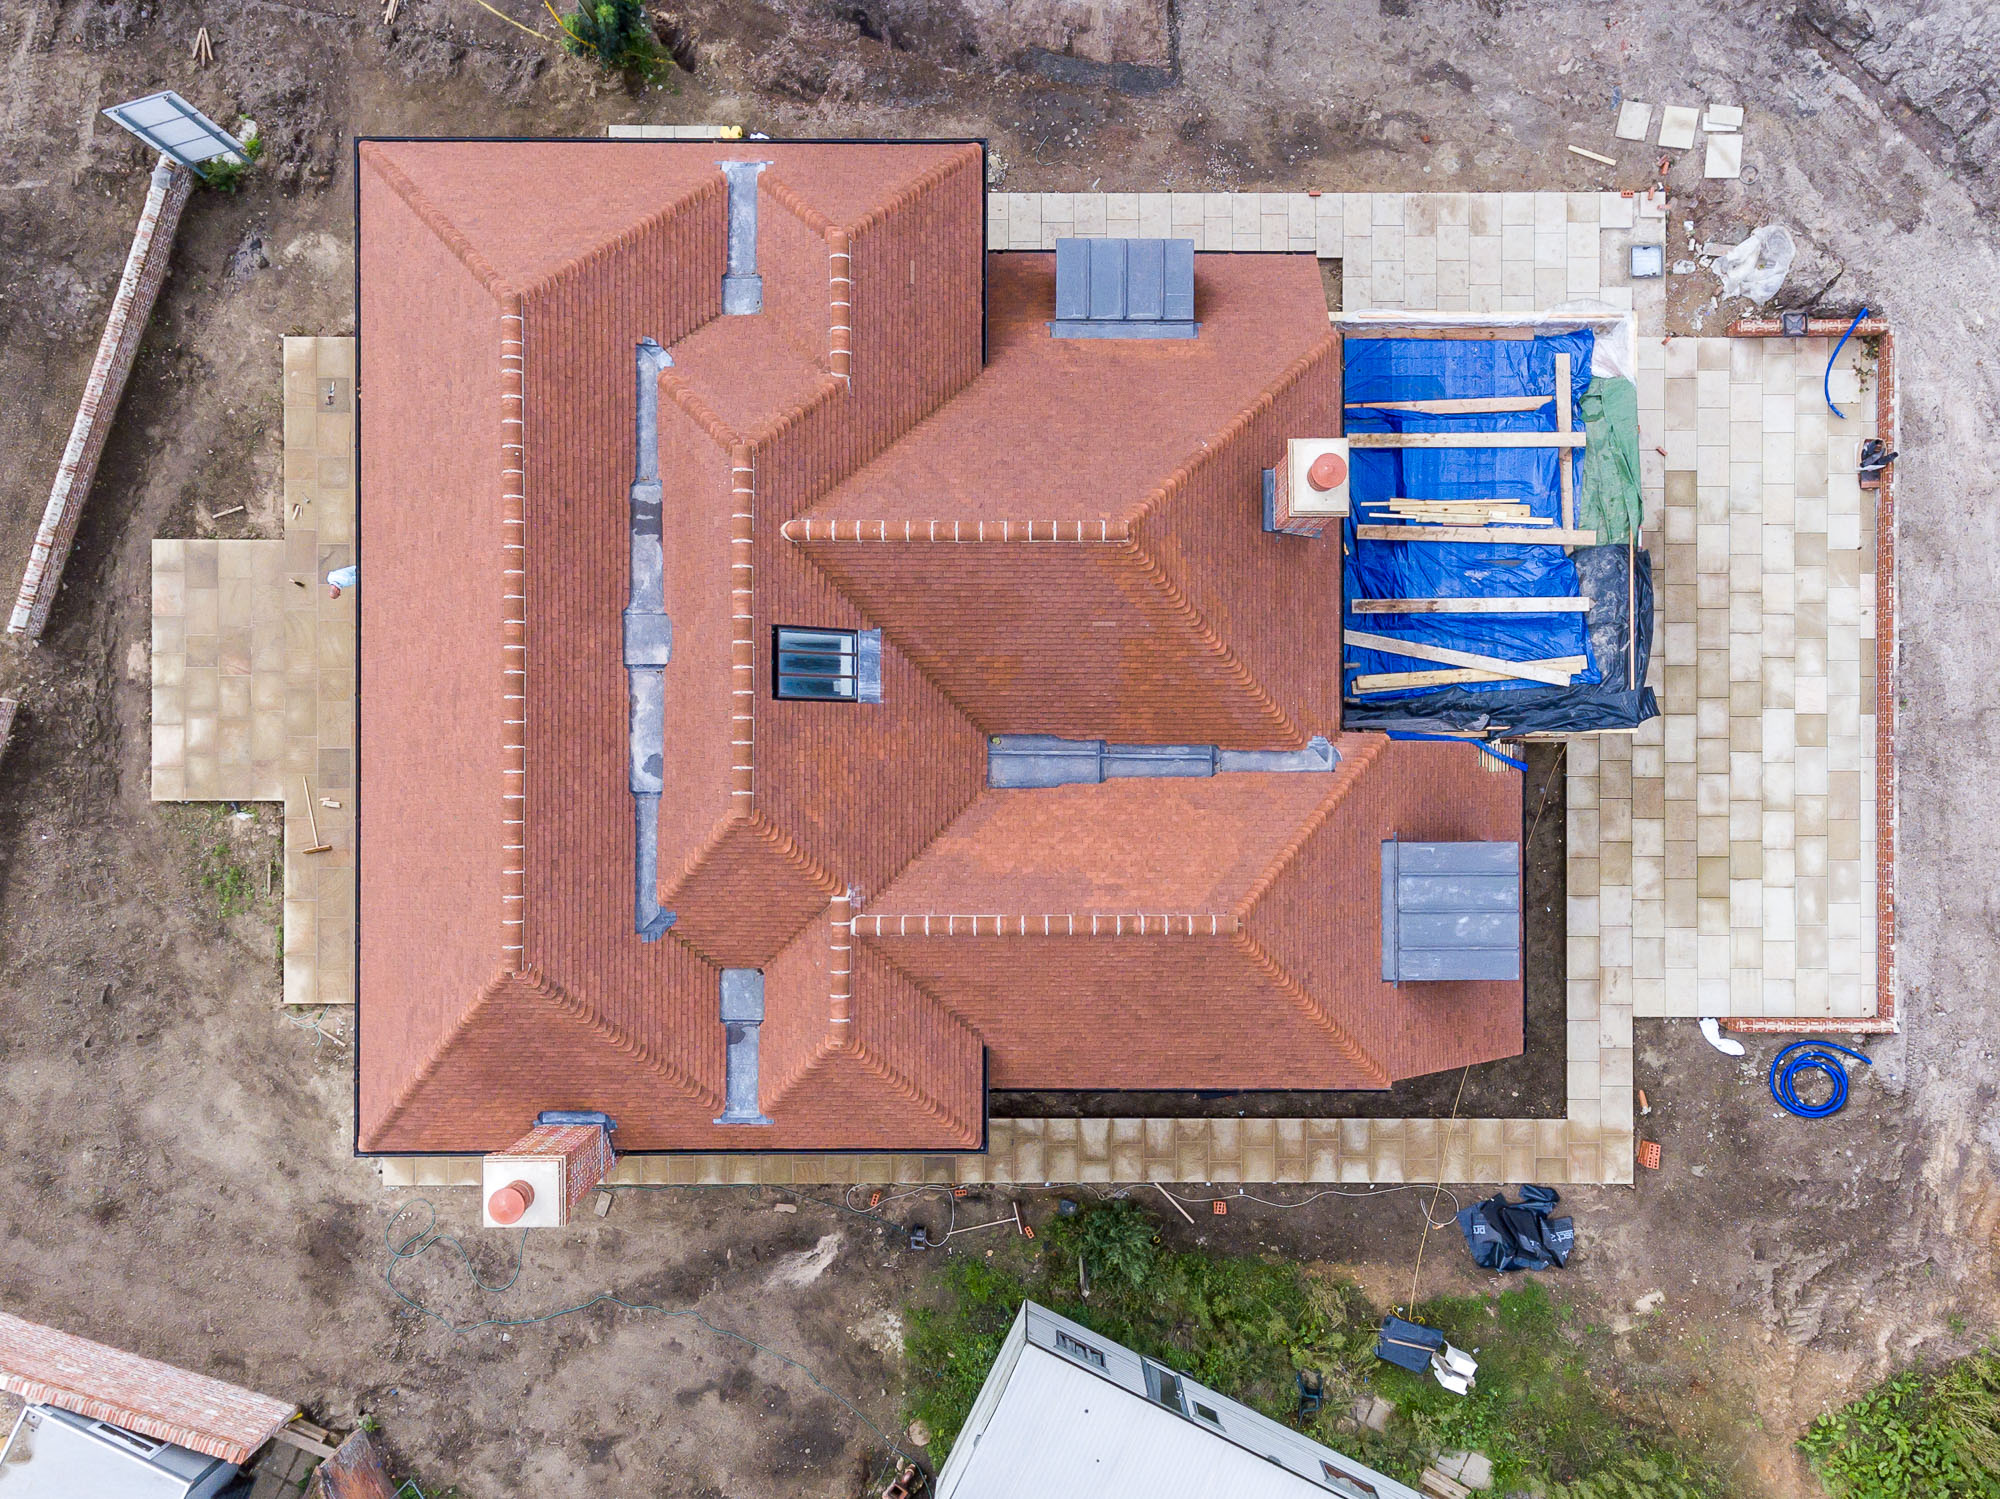 jonathan bond aerial photographer, overhead view of renovating building using drone